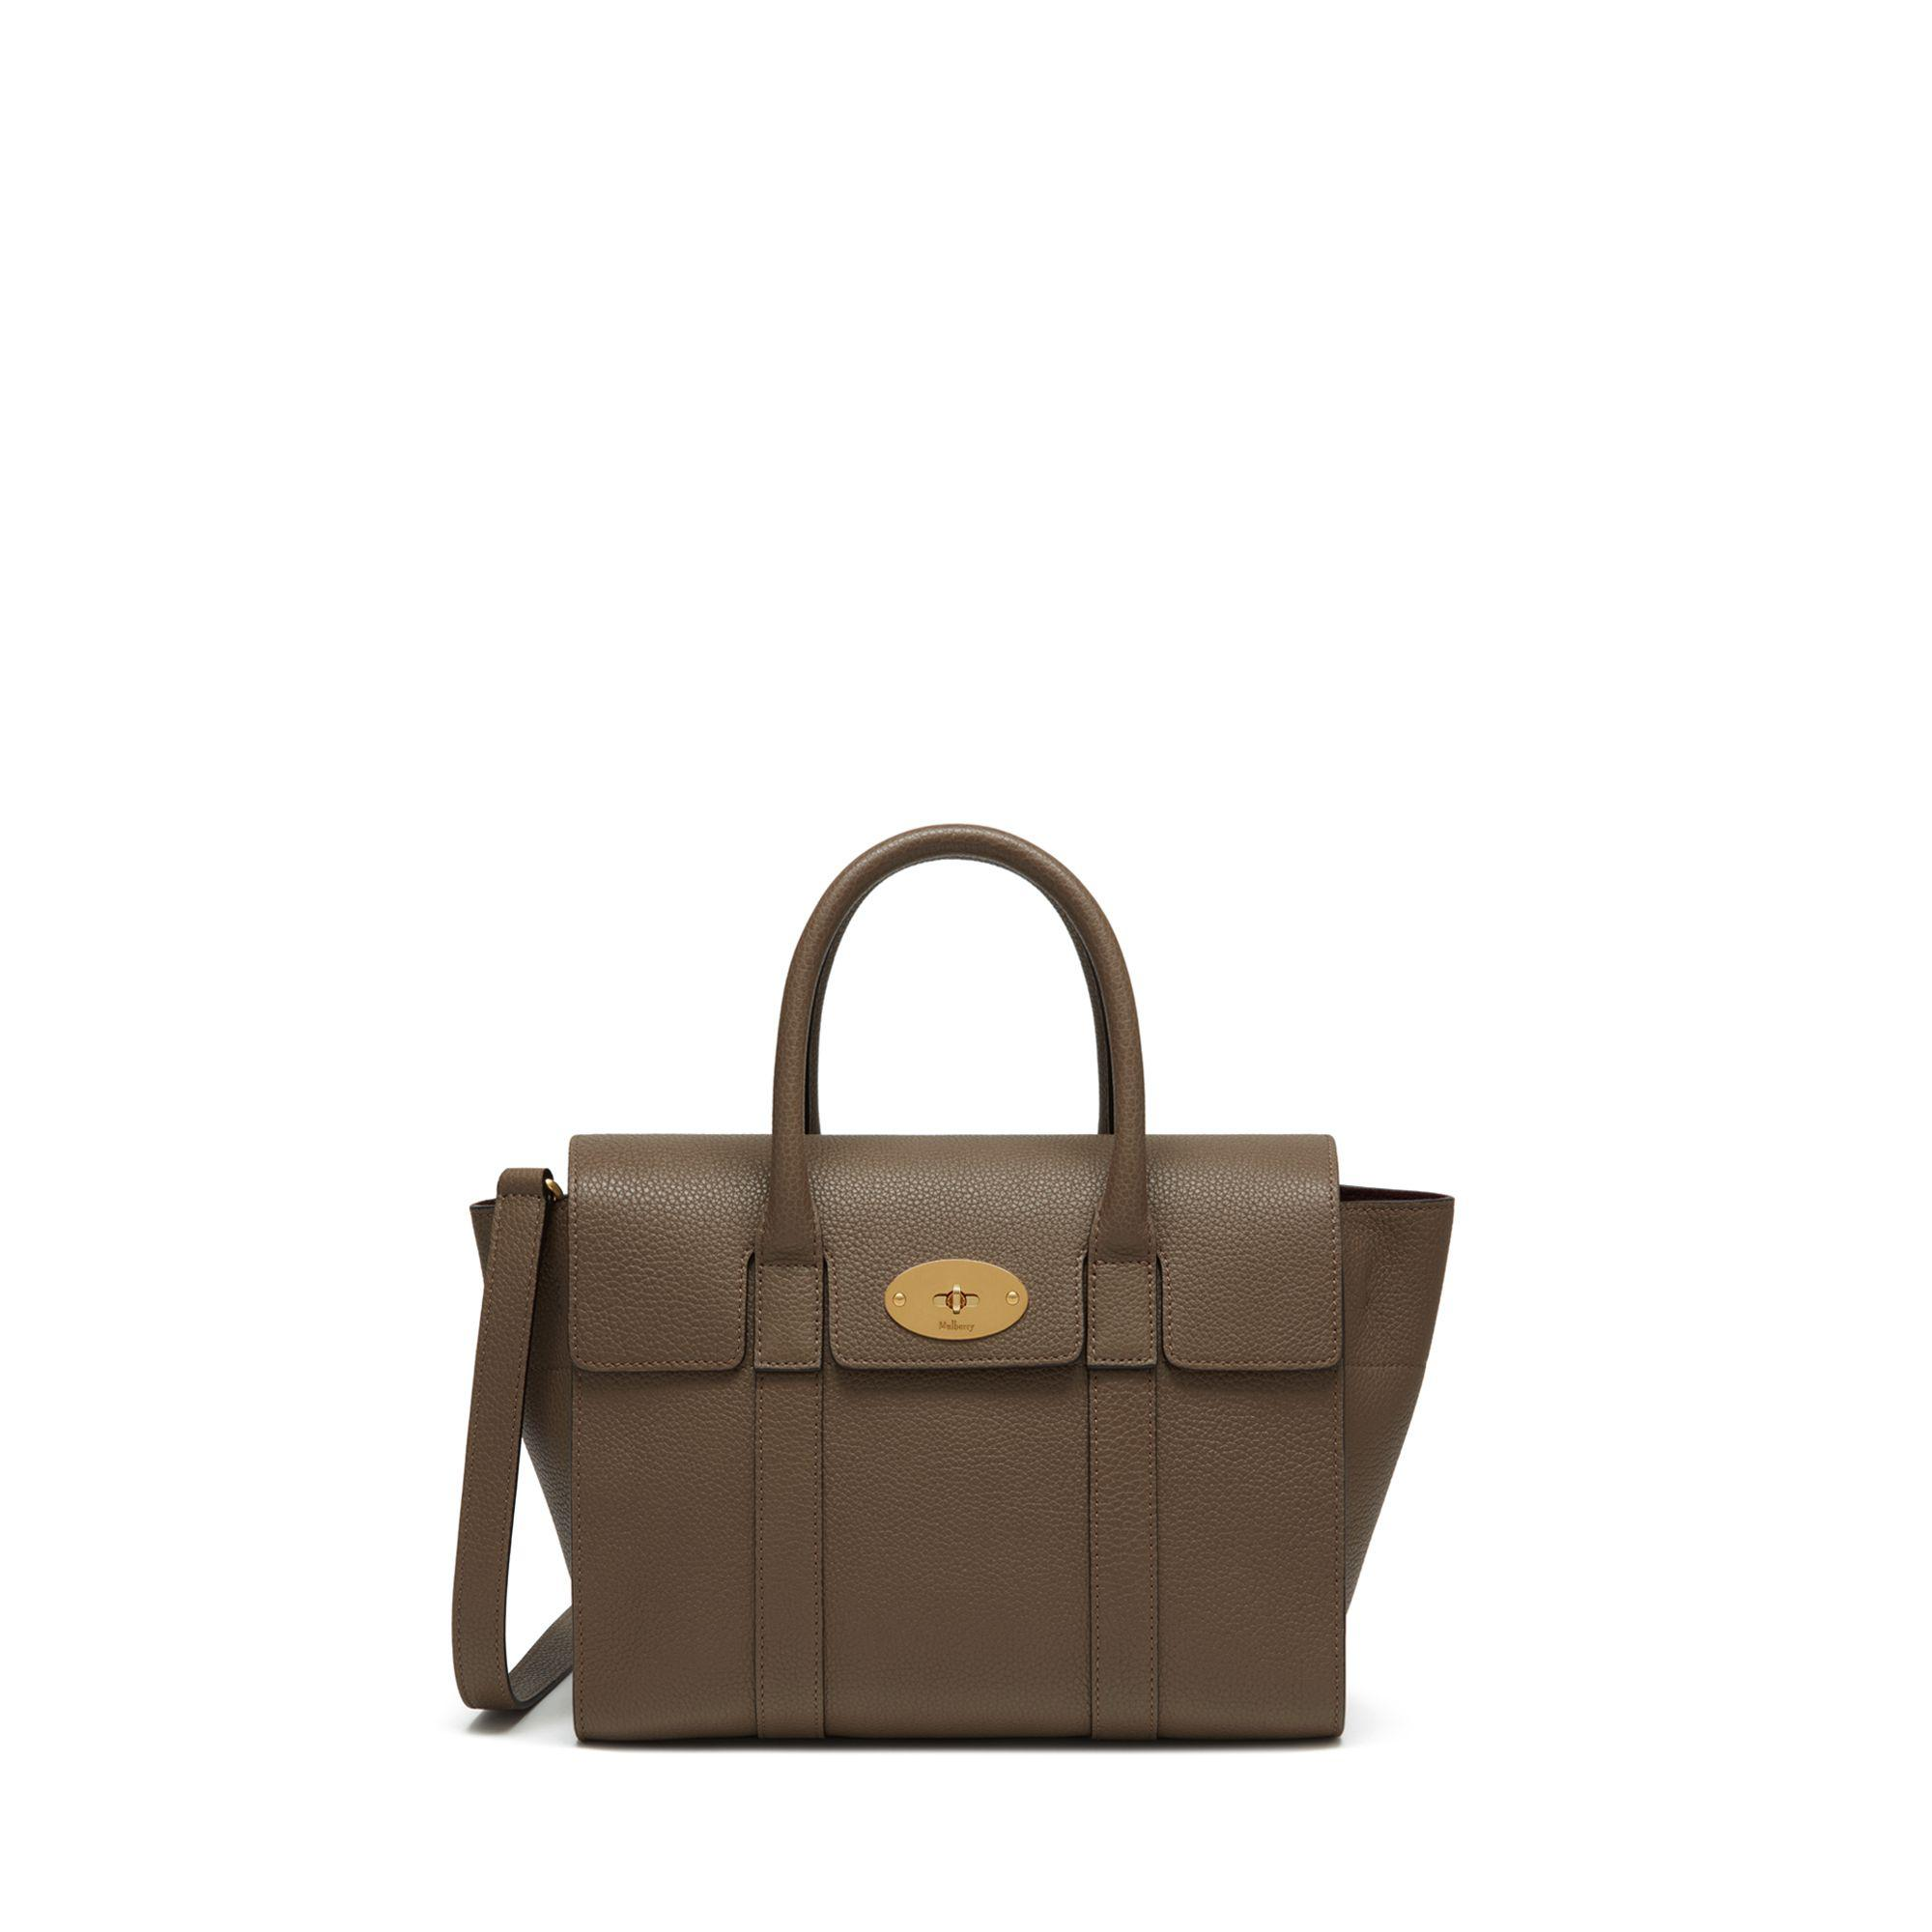 Mulberry Small New Bayswater in Brown - Lyst 245d16b4f8a70